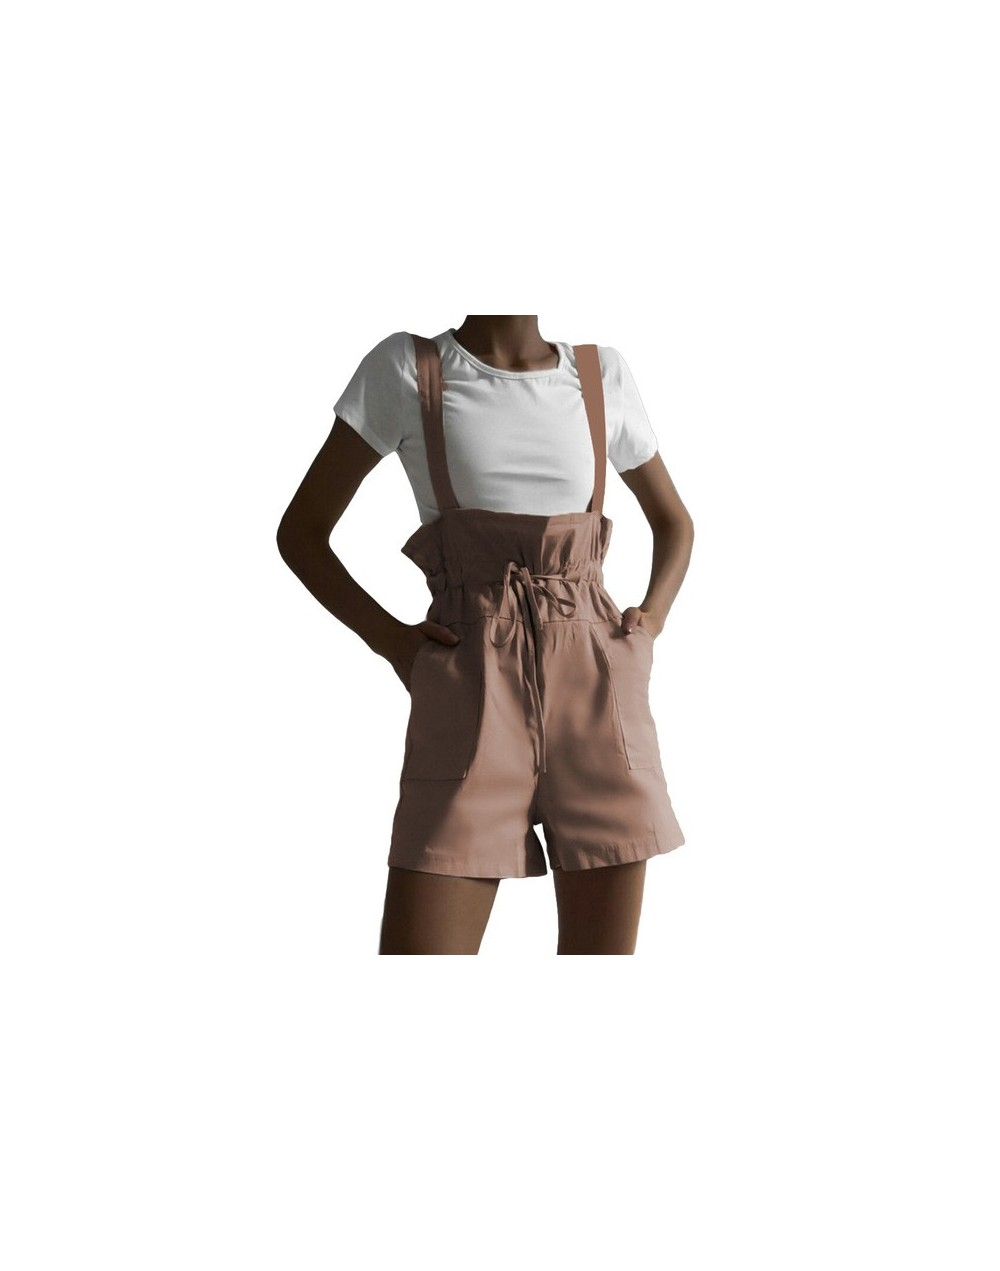 Women Strap Lace Up Short Jumpsuit 2019 Summer High Waist Pocket Playsuits Casual Loose Solid Overalls Playsuit Femme Romper...